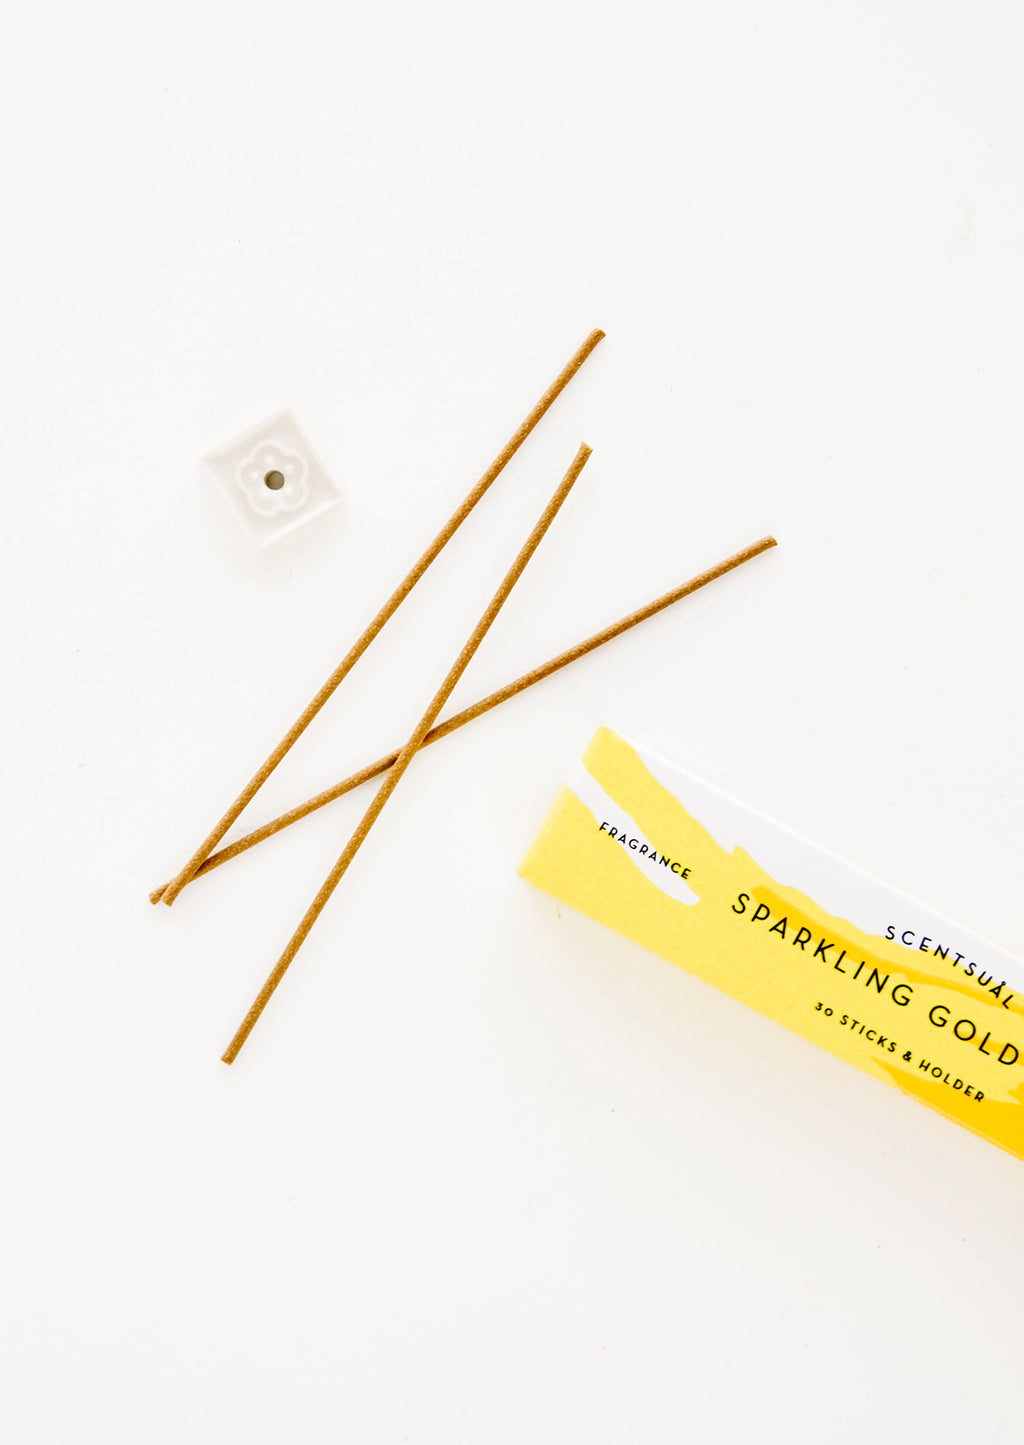 Gold Yuzu: Three thin incense sticks laid out next to a small square holder and yellow cardboard box.